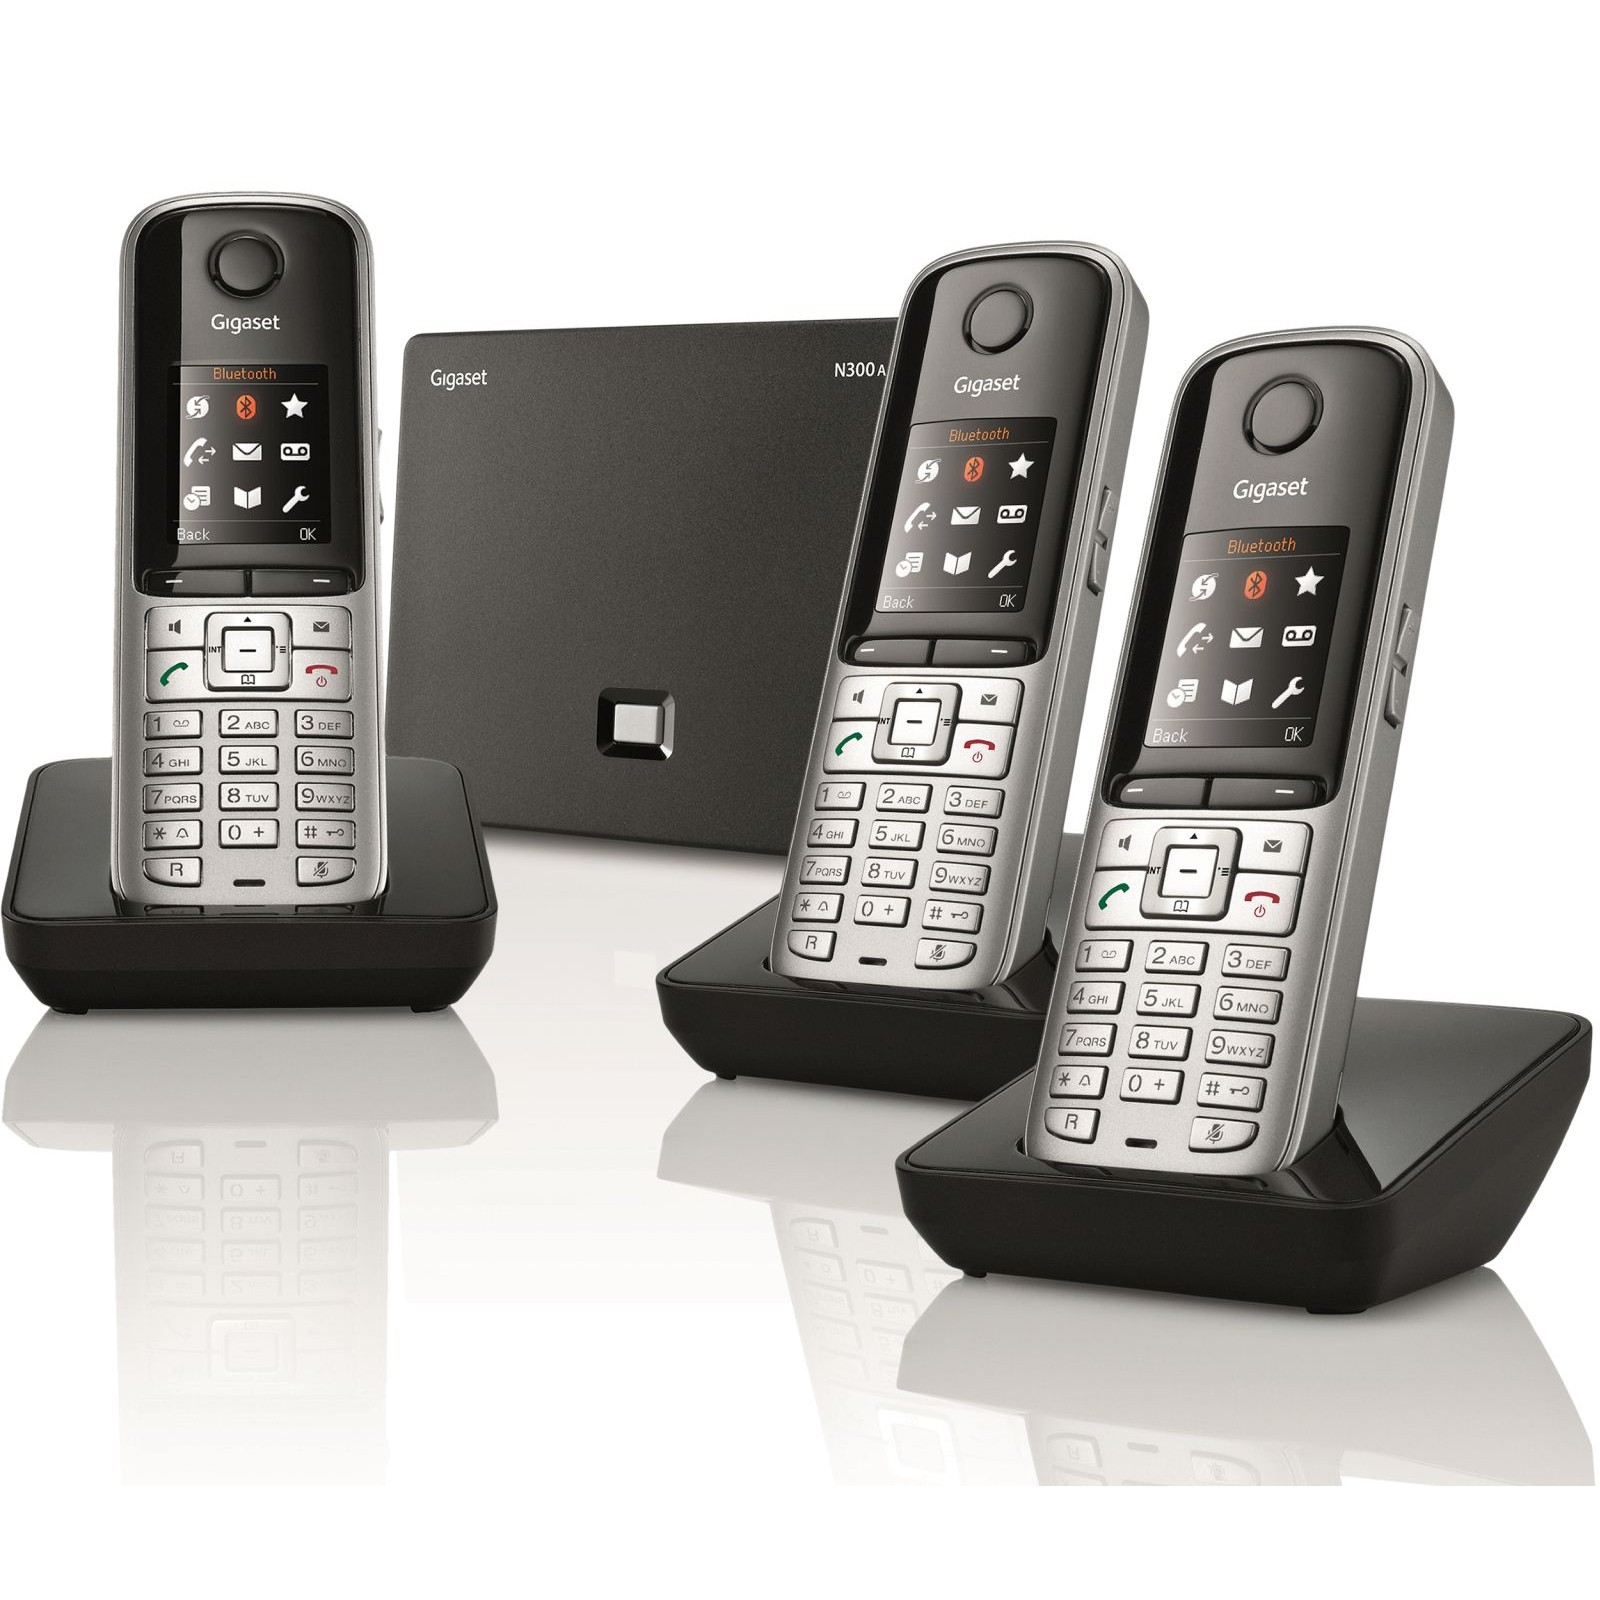 siemens gigaset s810a trio voip dect cordless phones ligo. Black Bedroom Furniture Sets. Home Design Ideas